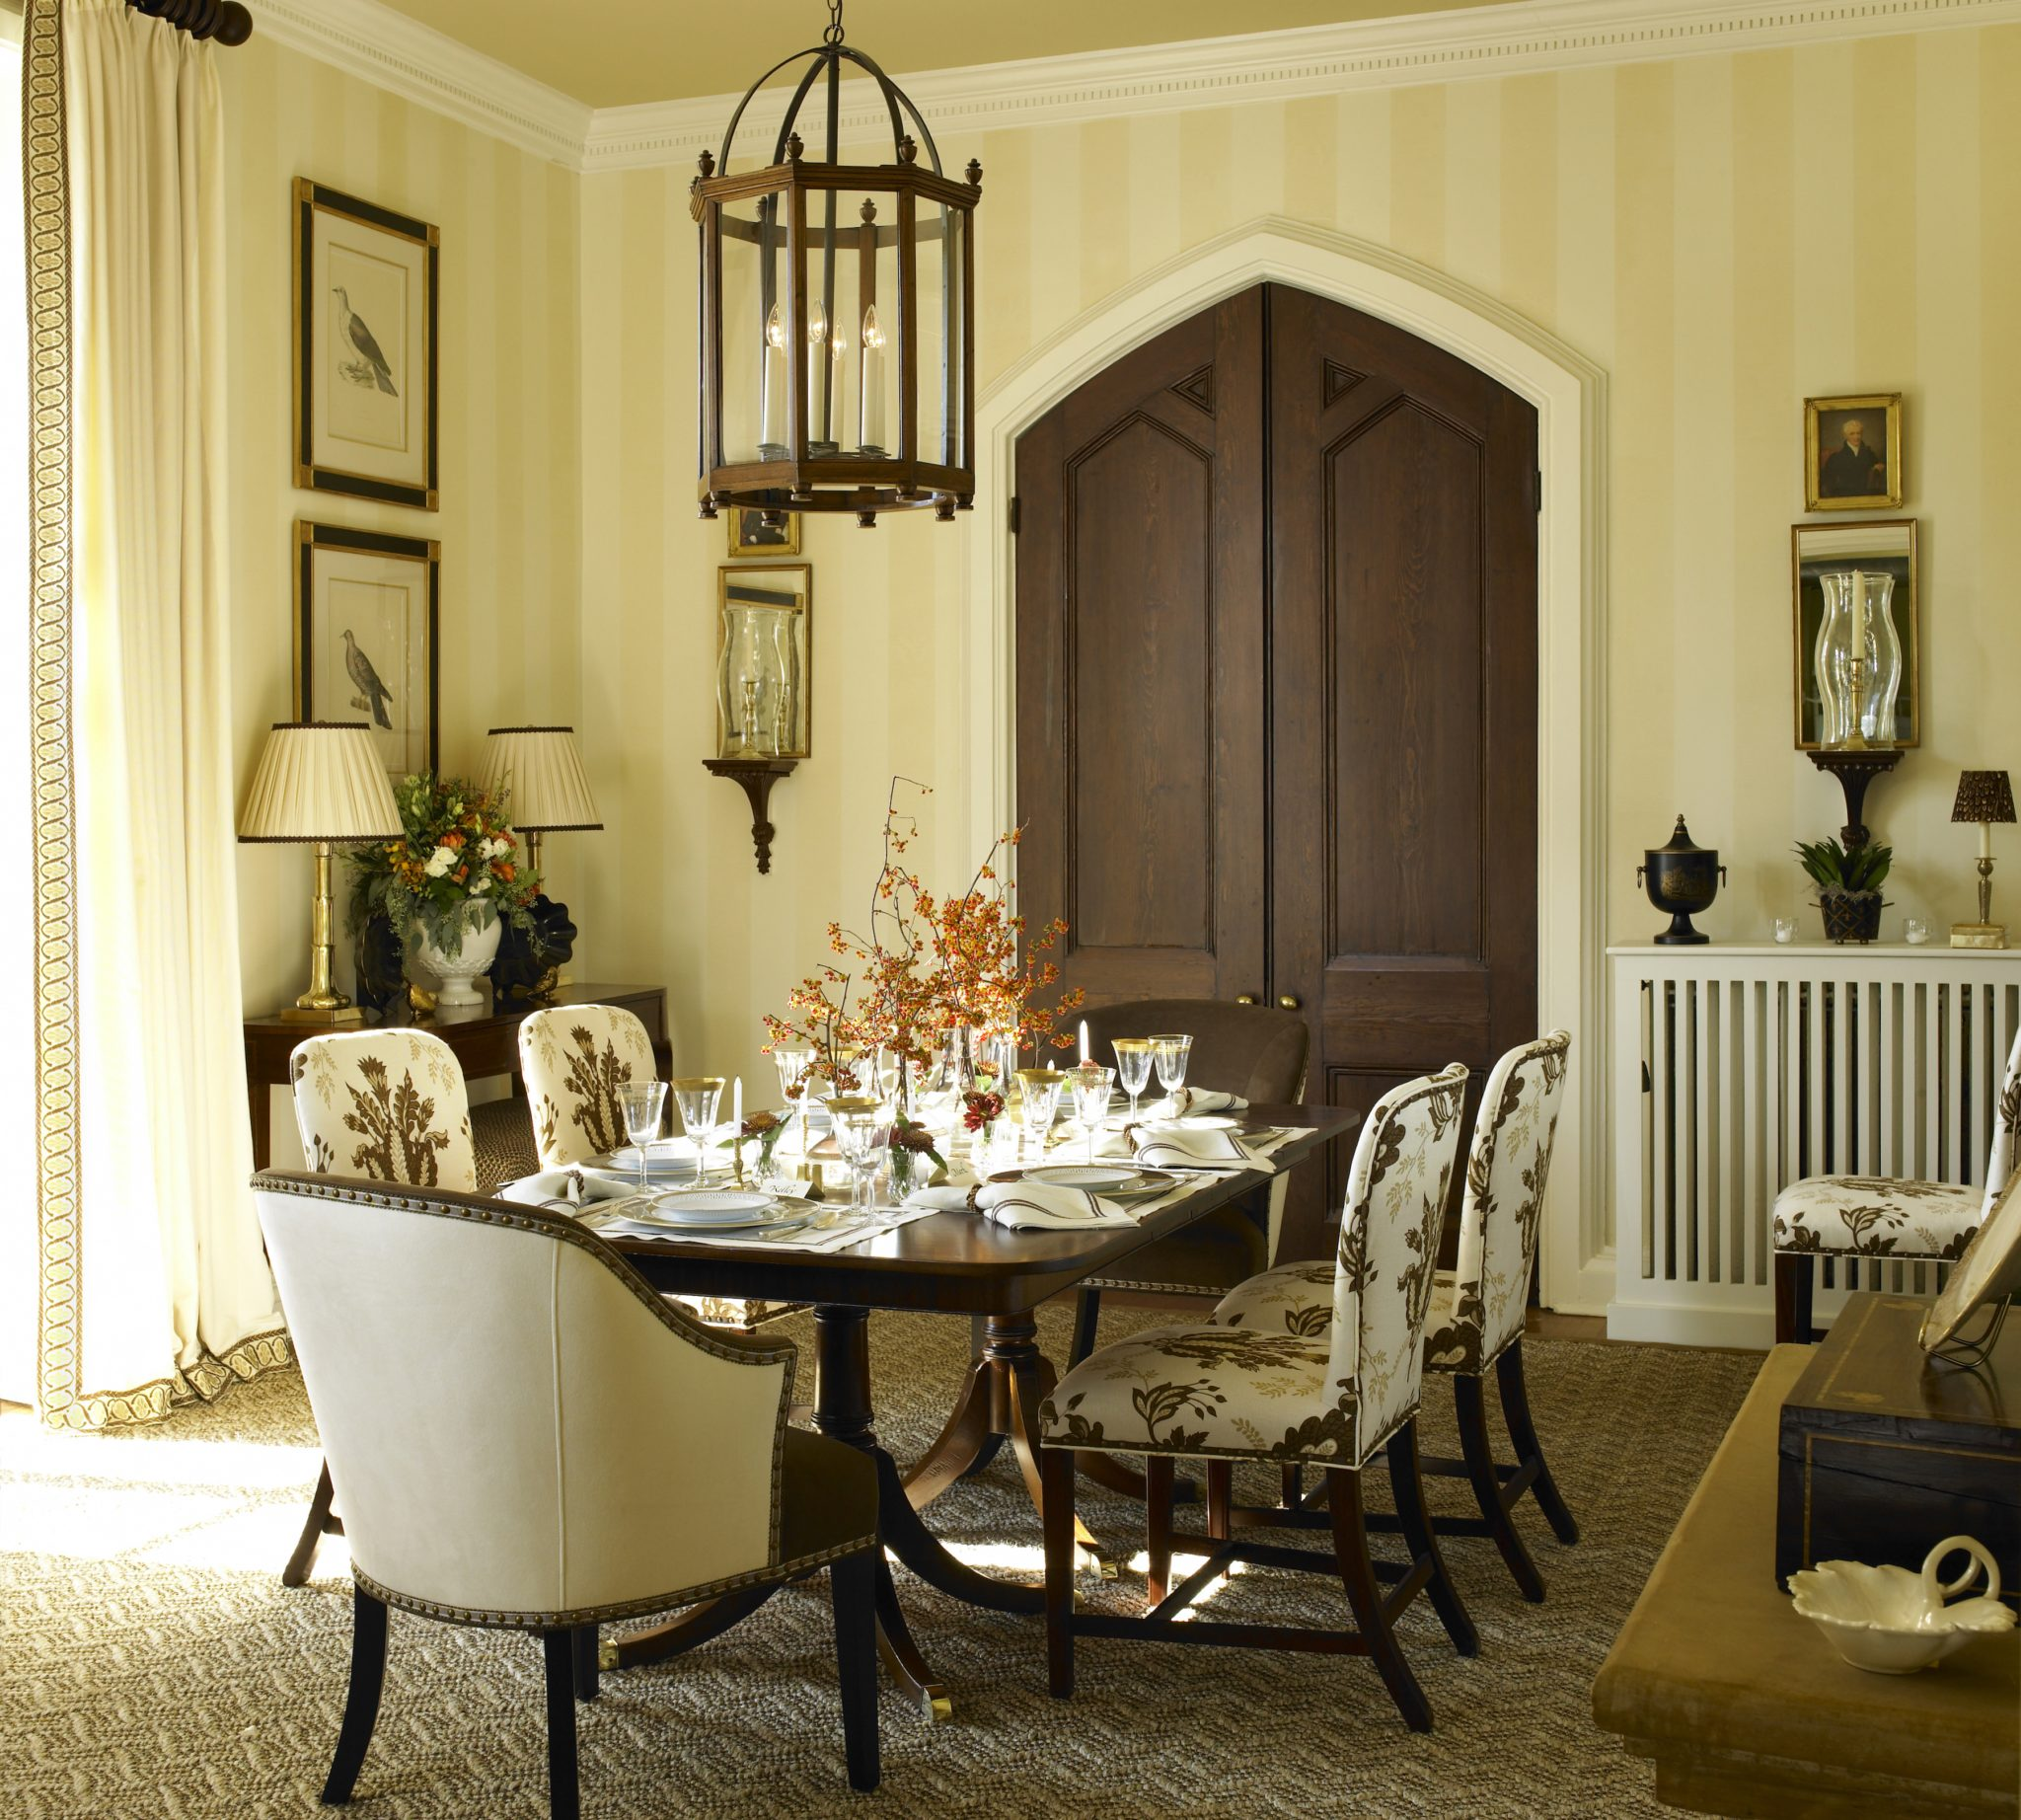 Kelley Interior Design Dining Room by Kelley Proxmire, Inc.